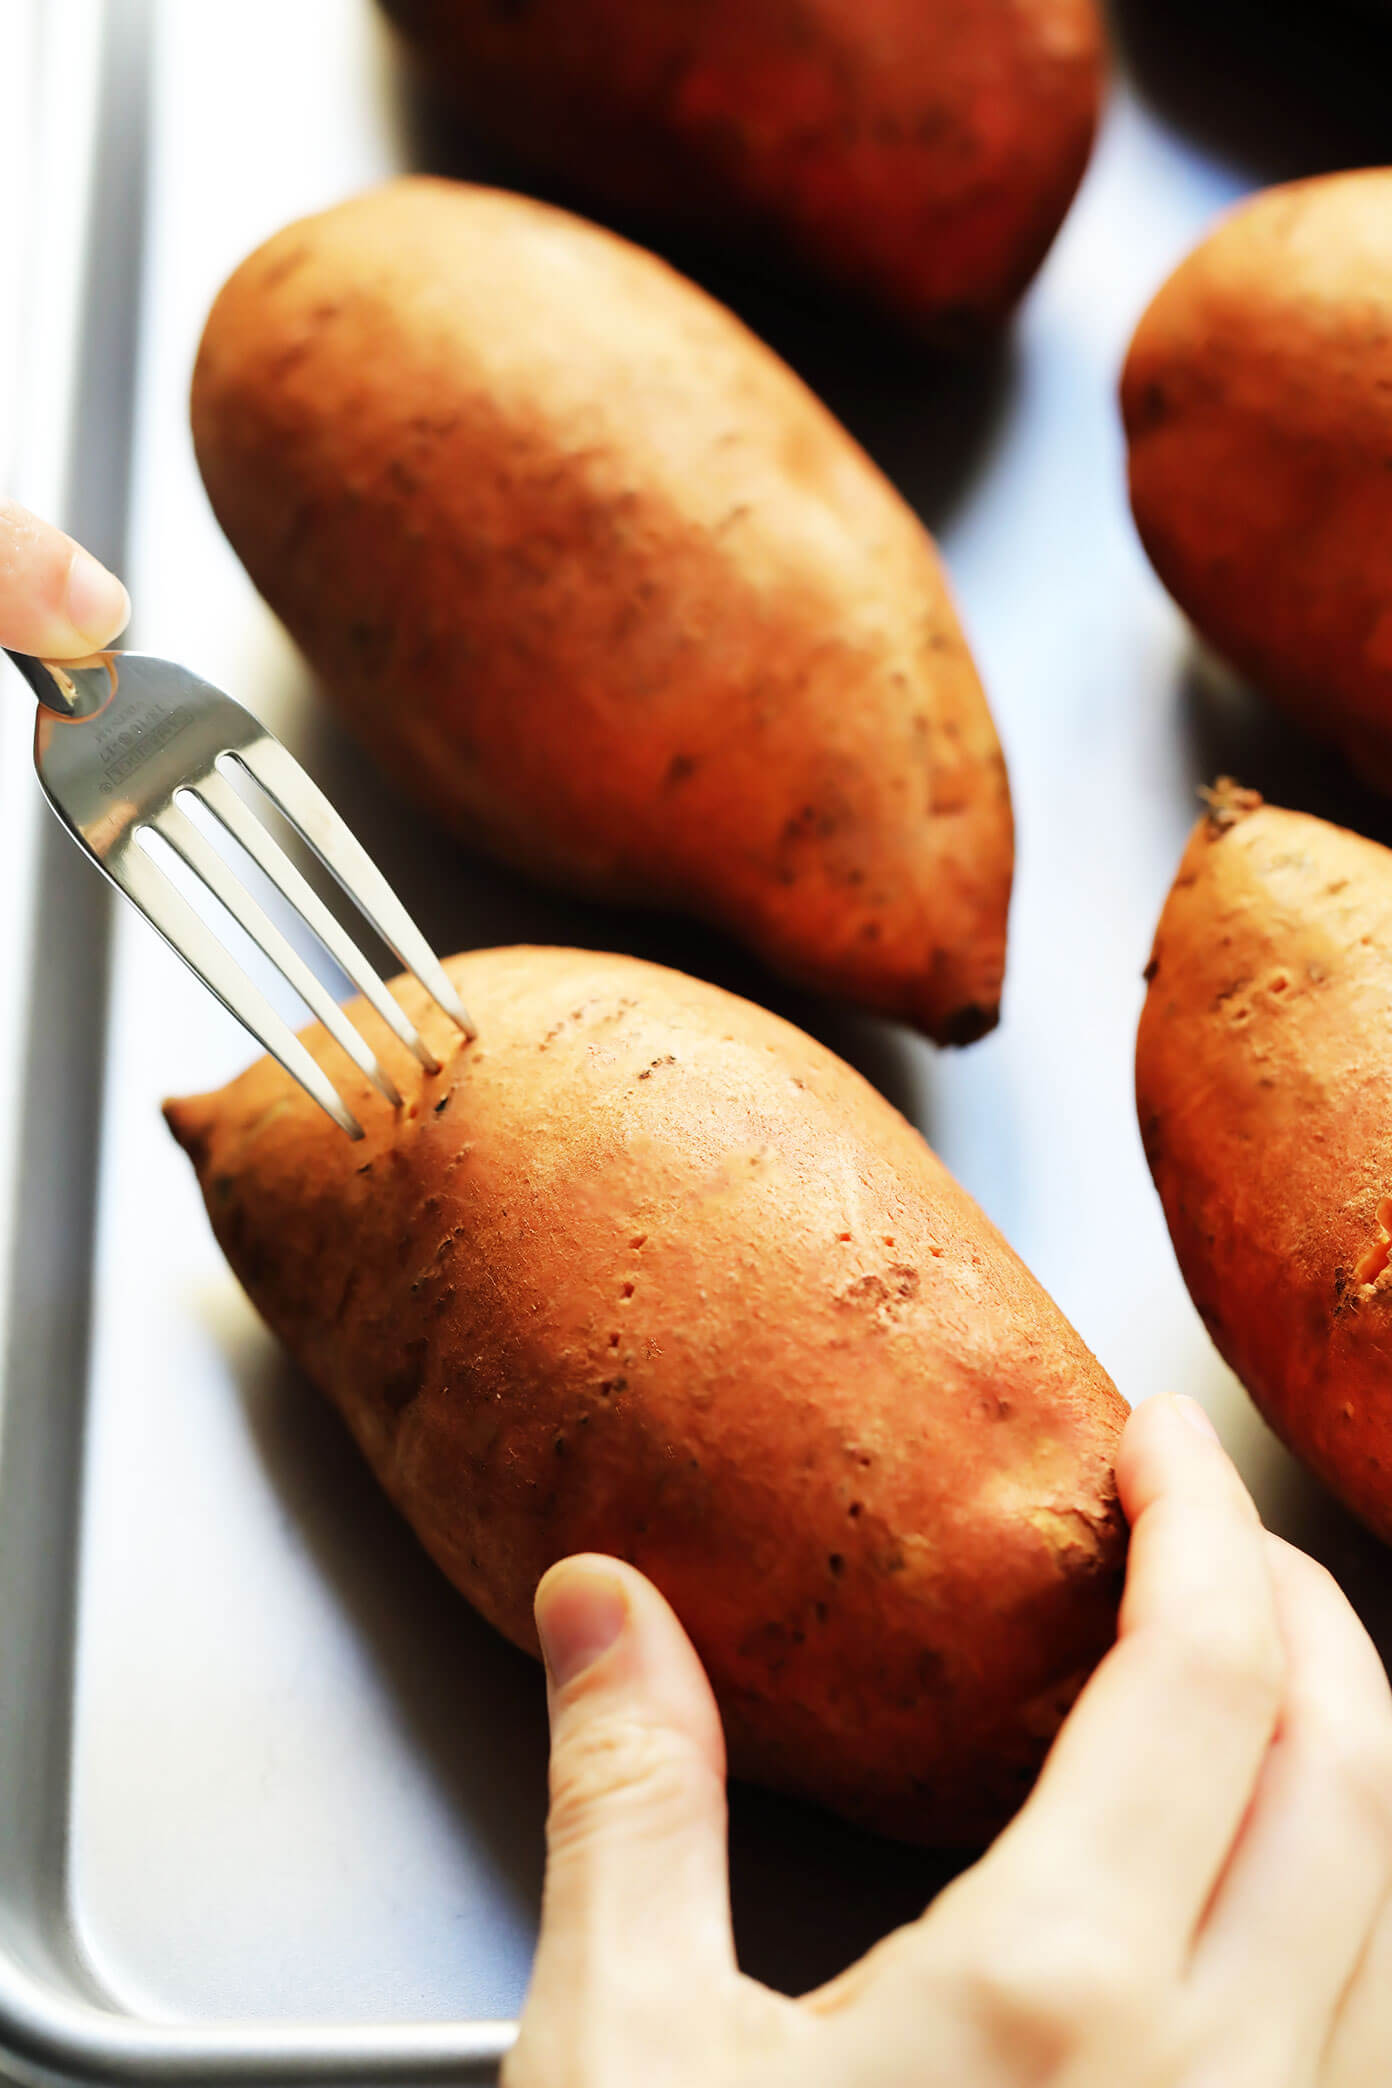 Poke Sweet Potatoes Before Baking